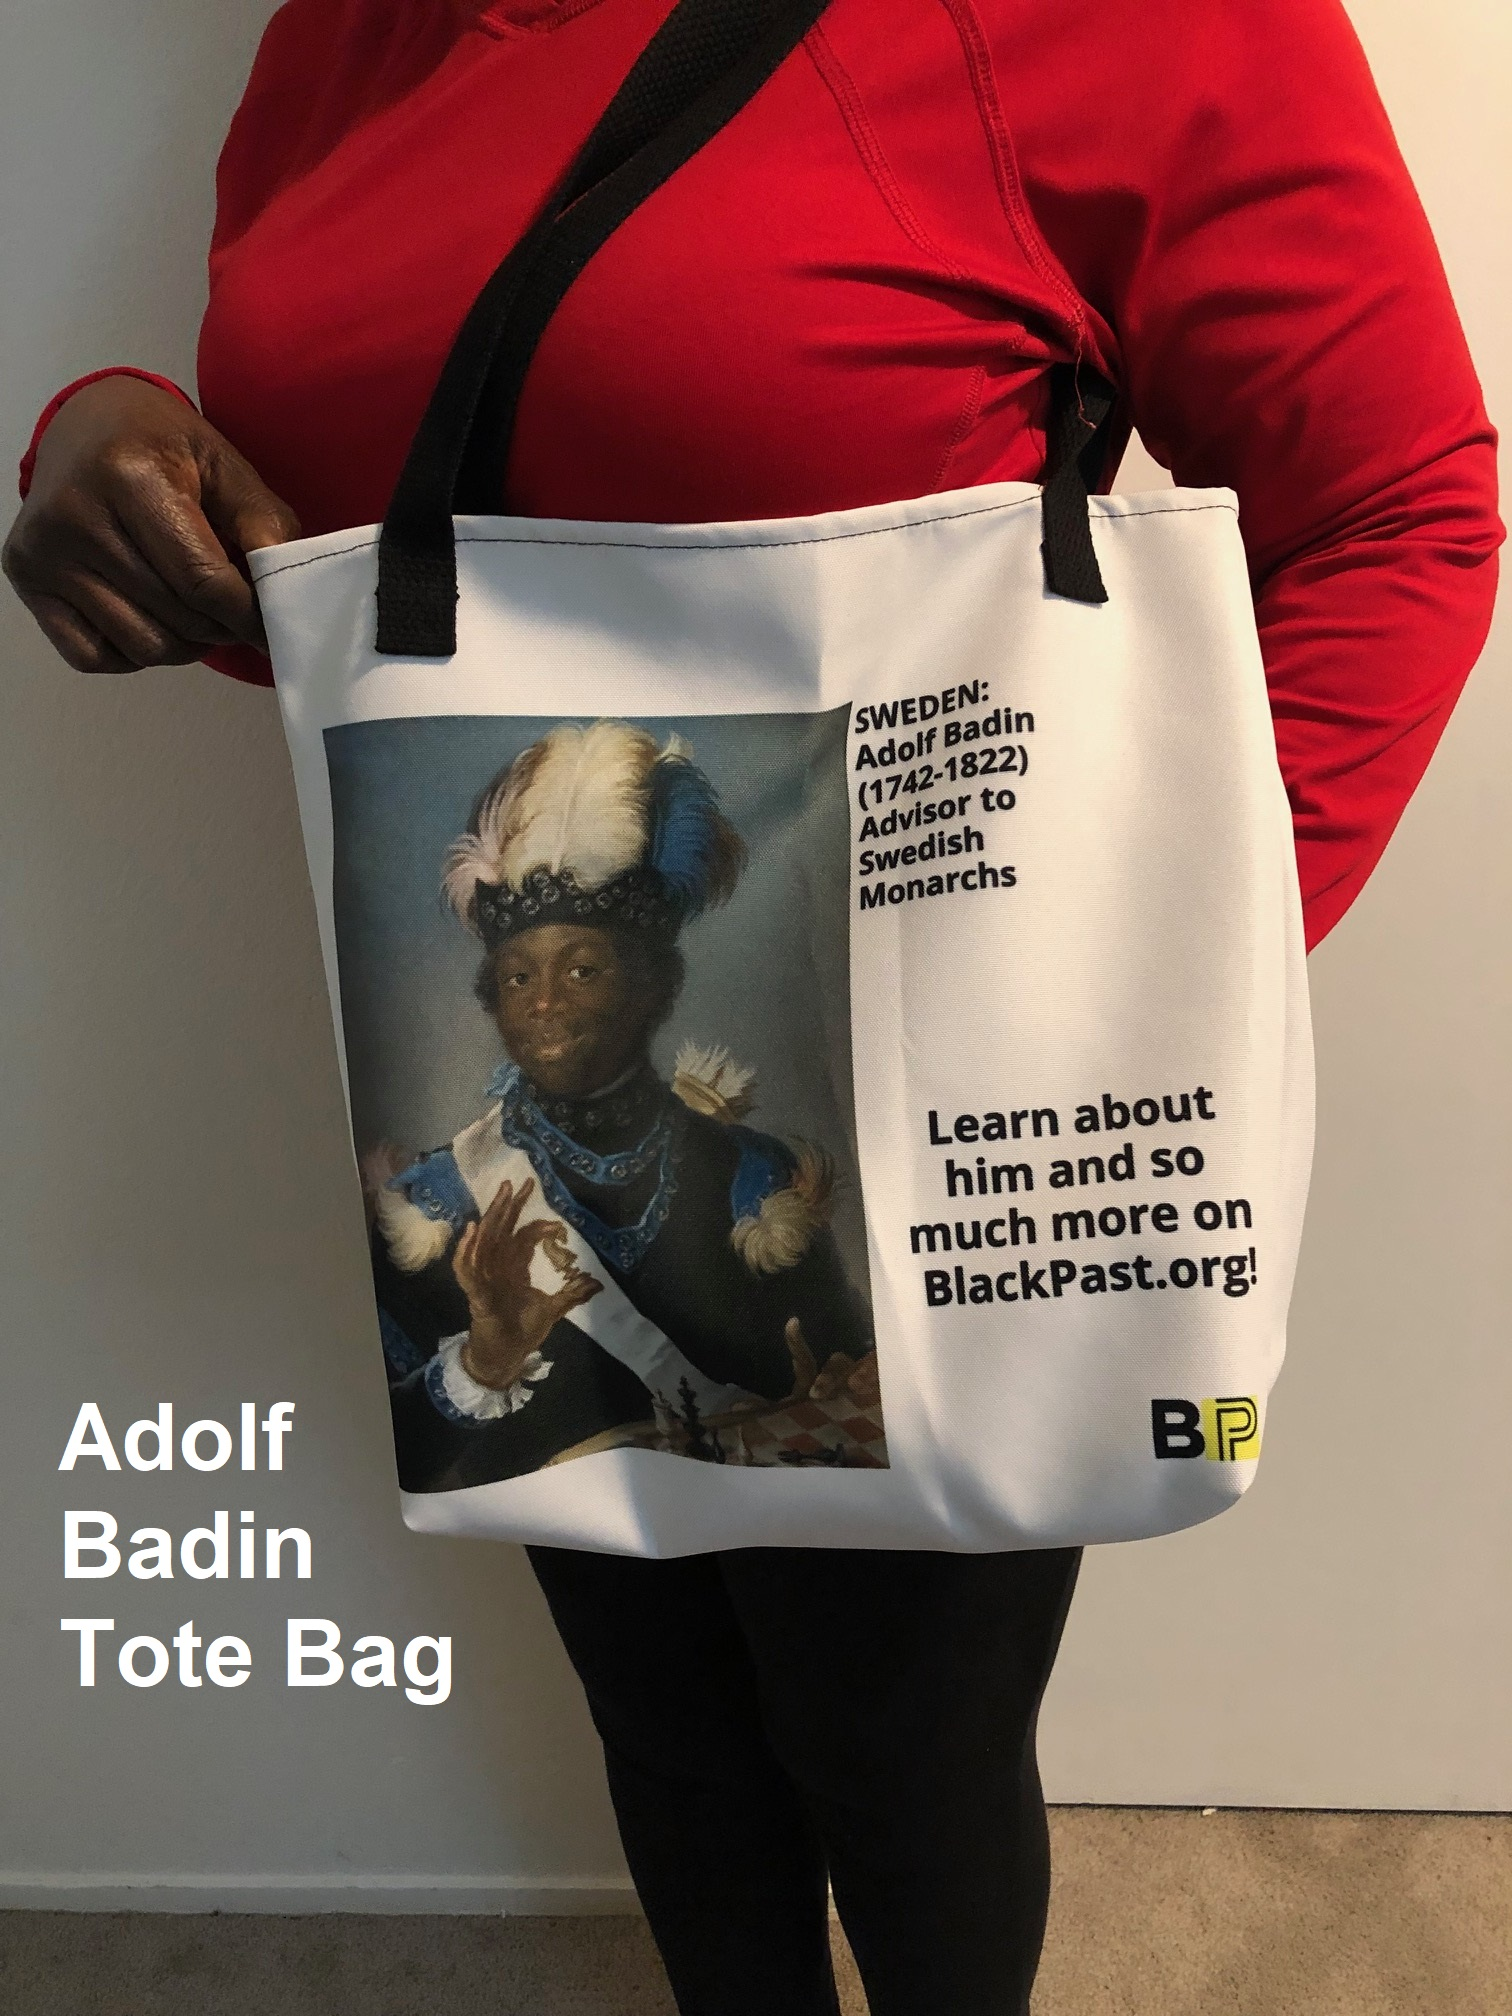 Adolf Badin Tote Bag